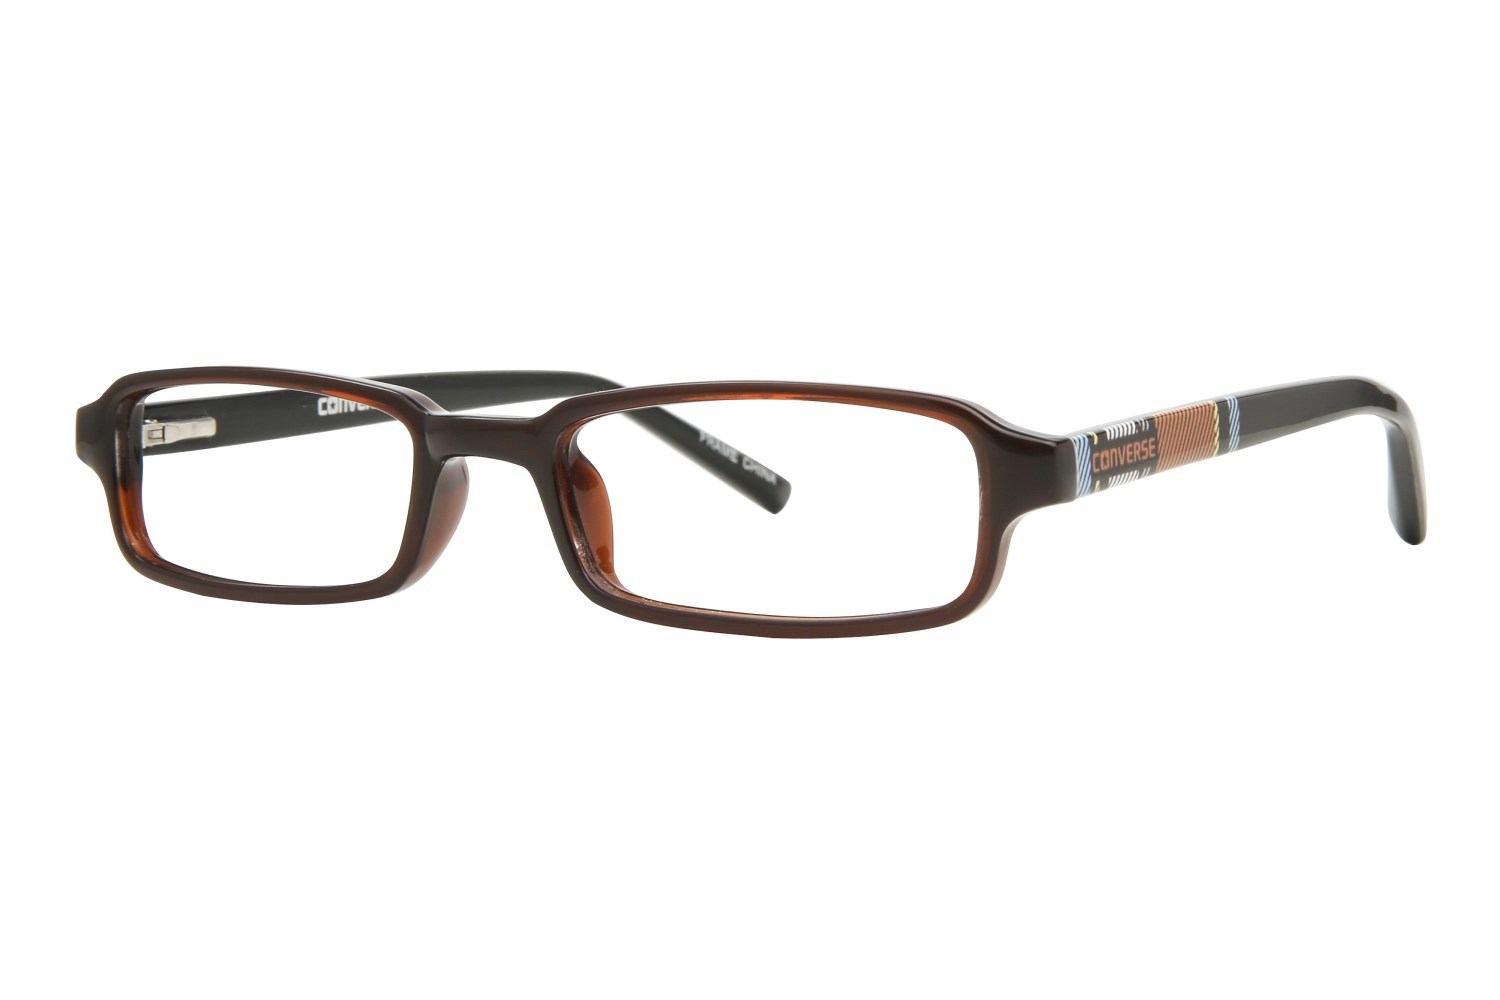 converse-zoom-prescription-eyeglasses